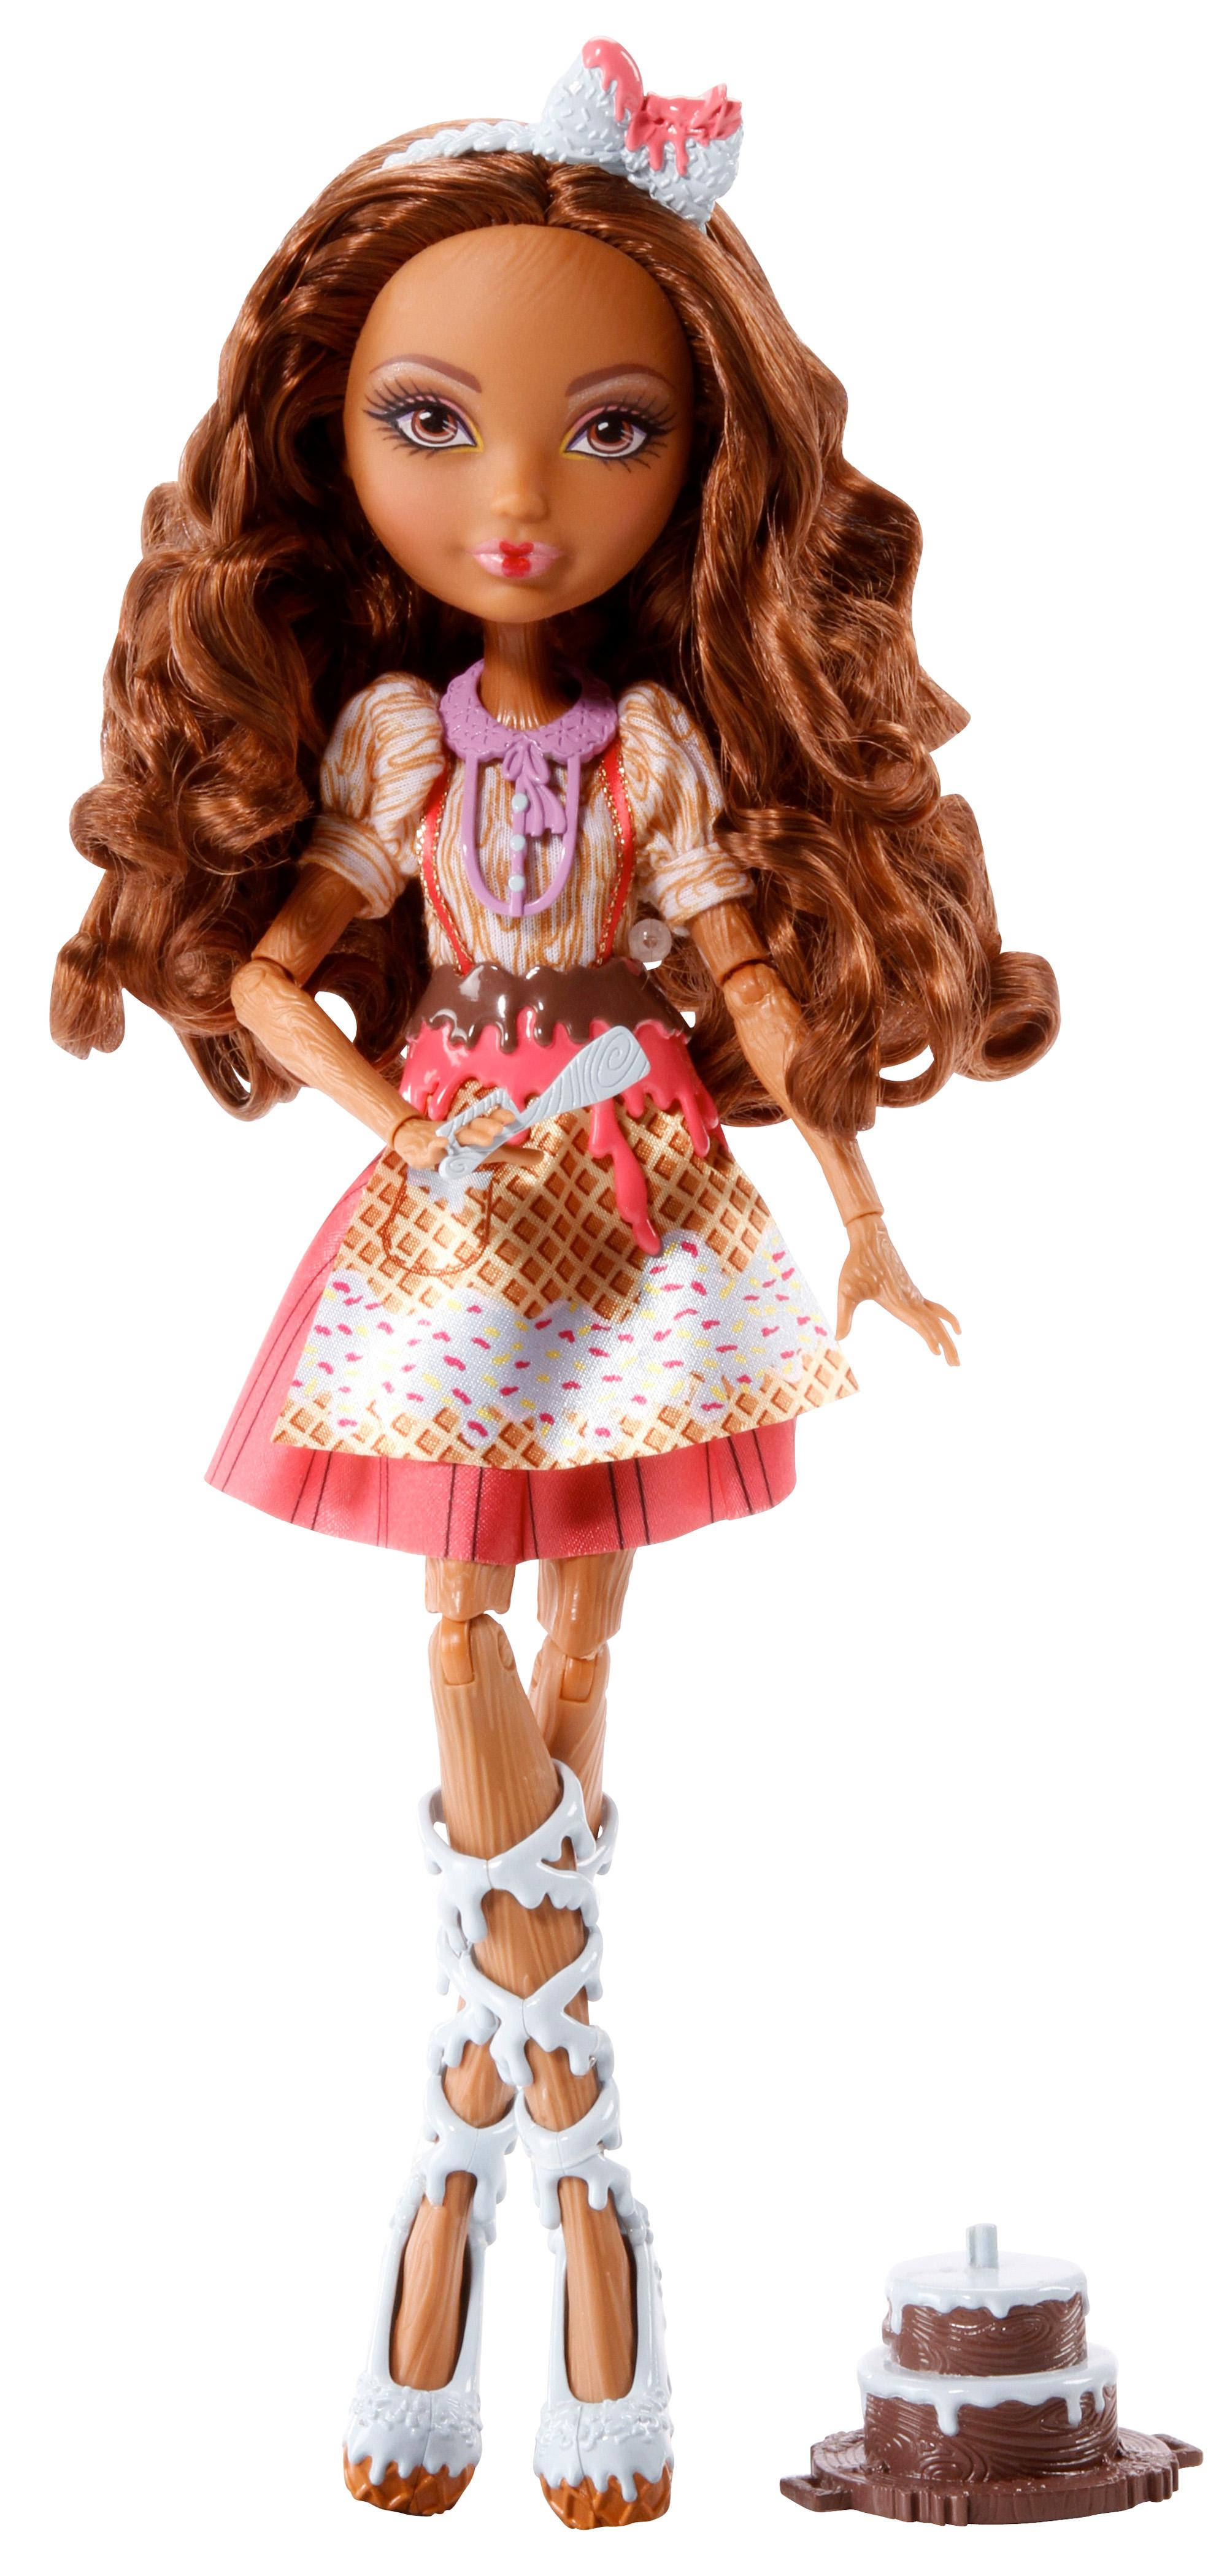 Amazon.com: Ever After High Sugar Coated Cedar Wood Doll: Toys & Games